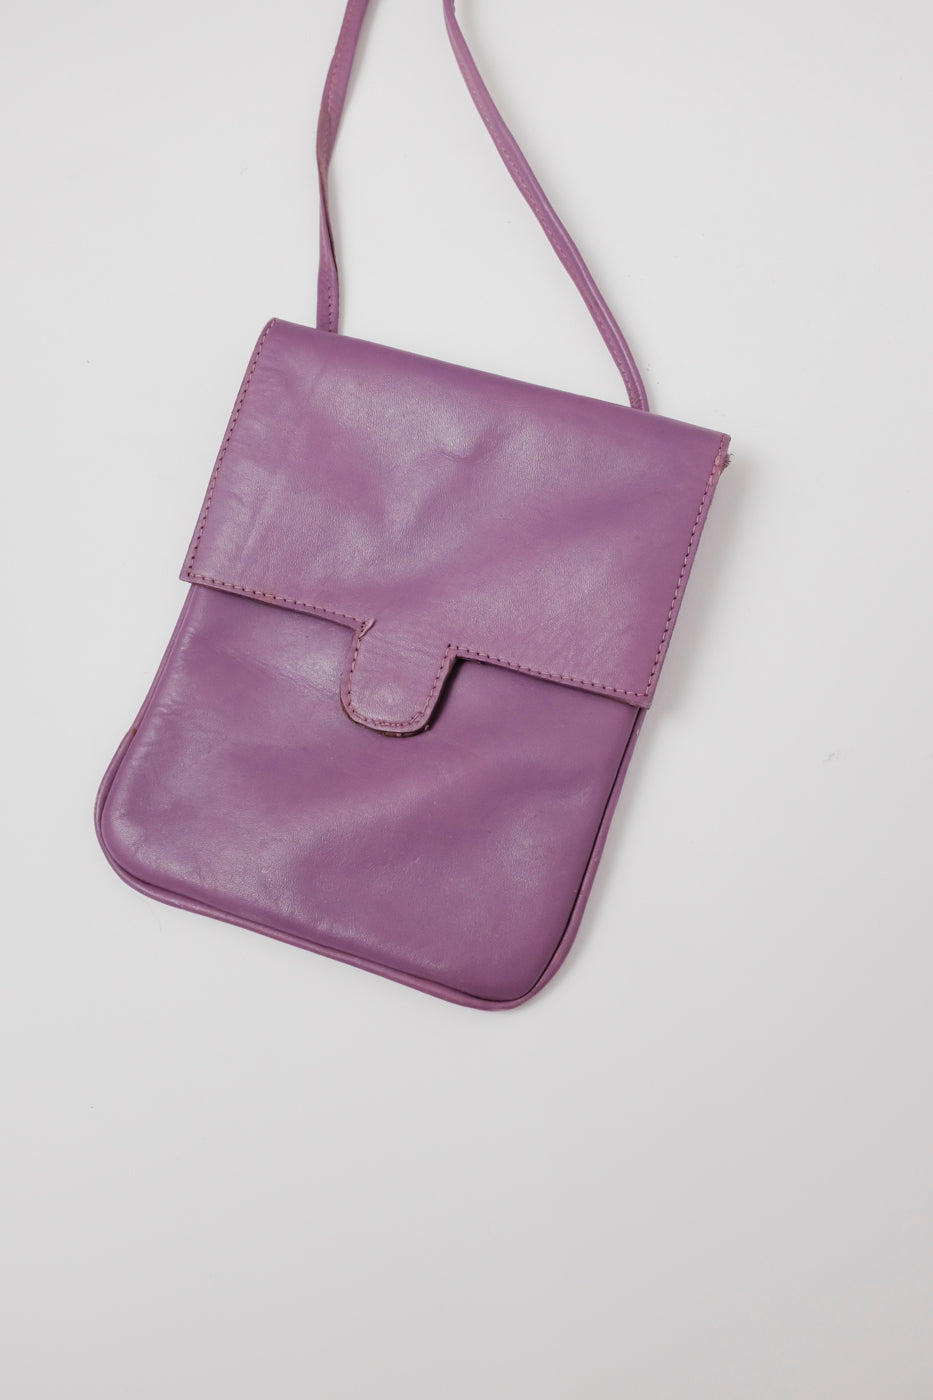 0015_VINTAGE PURPLE LEATHER PURSE BAG